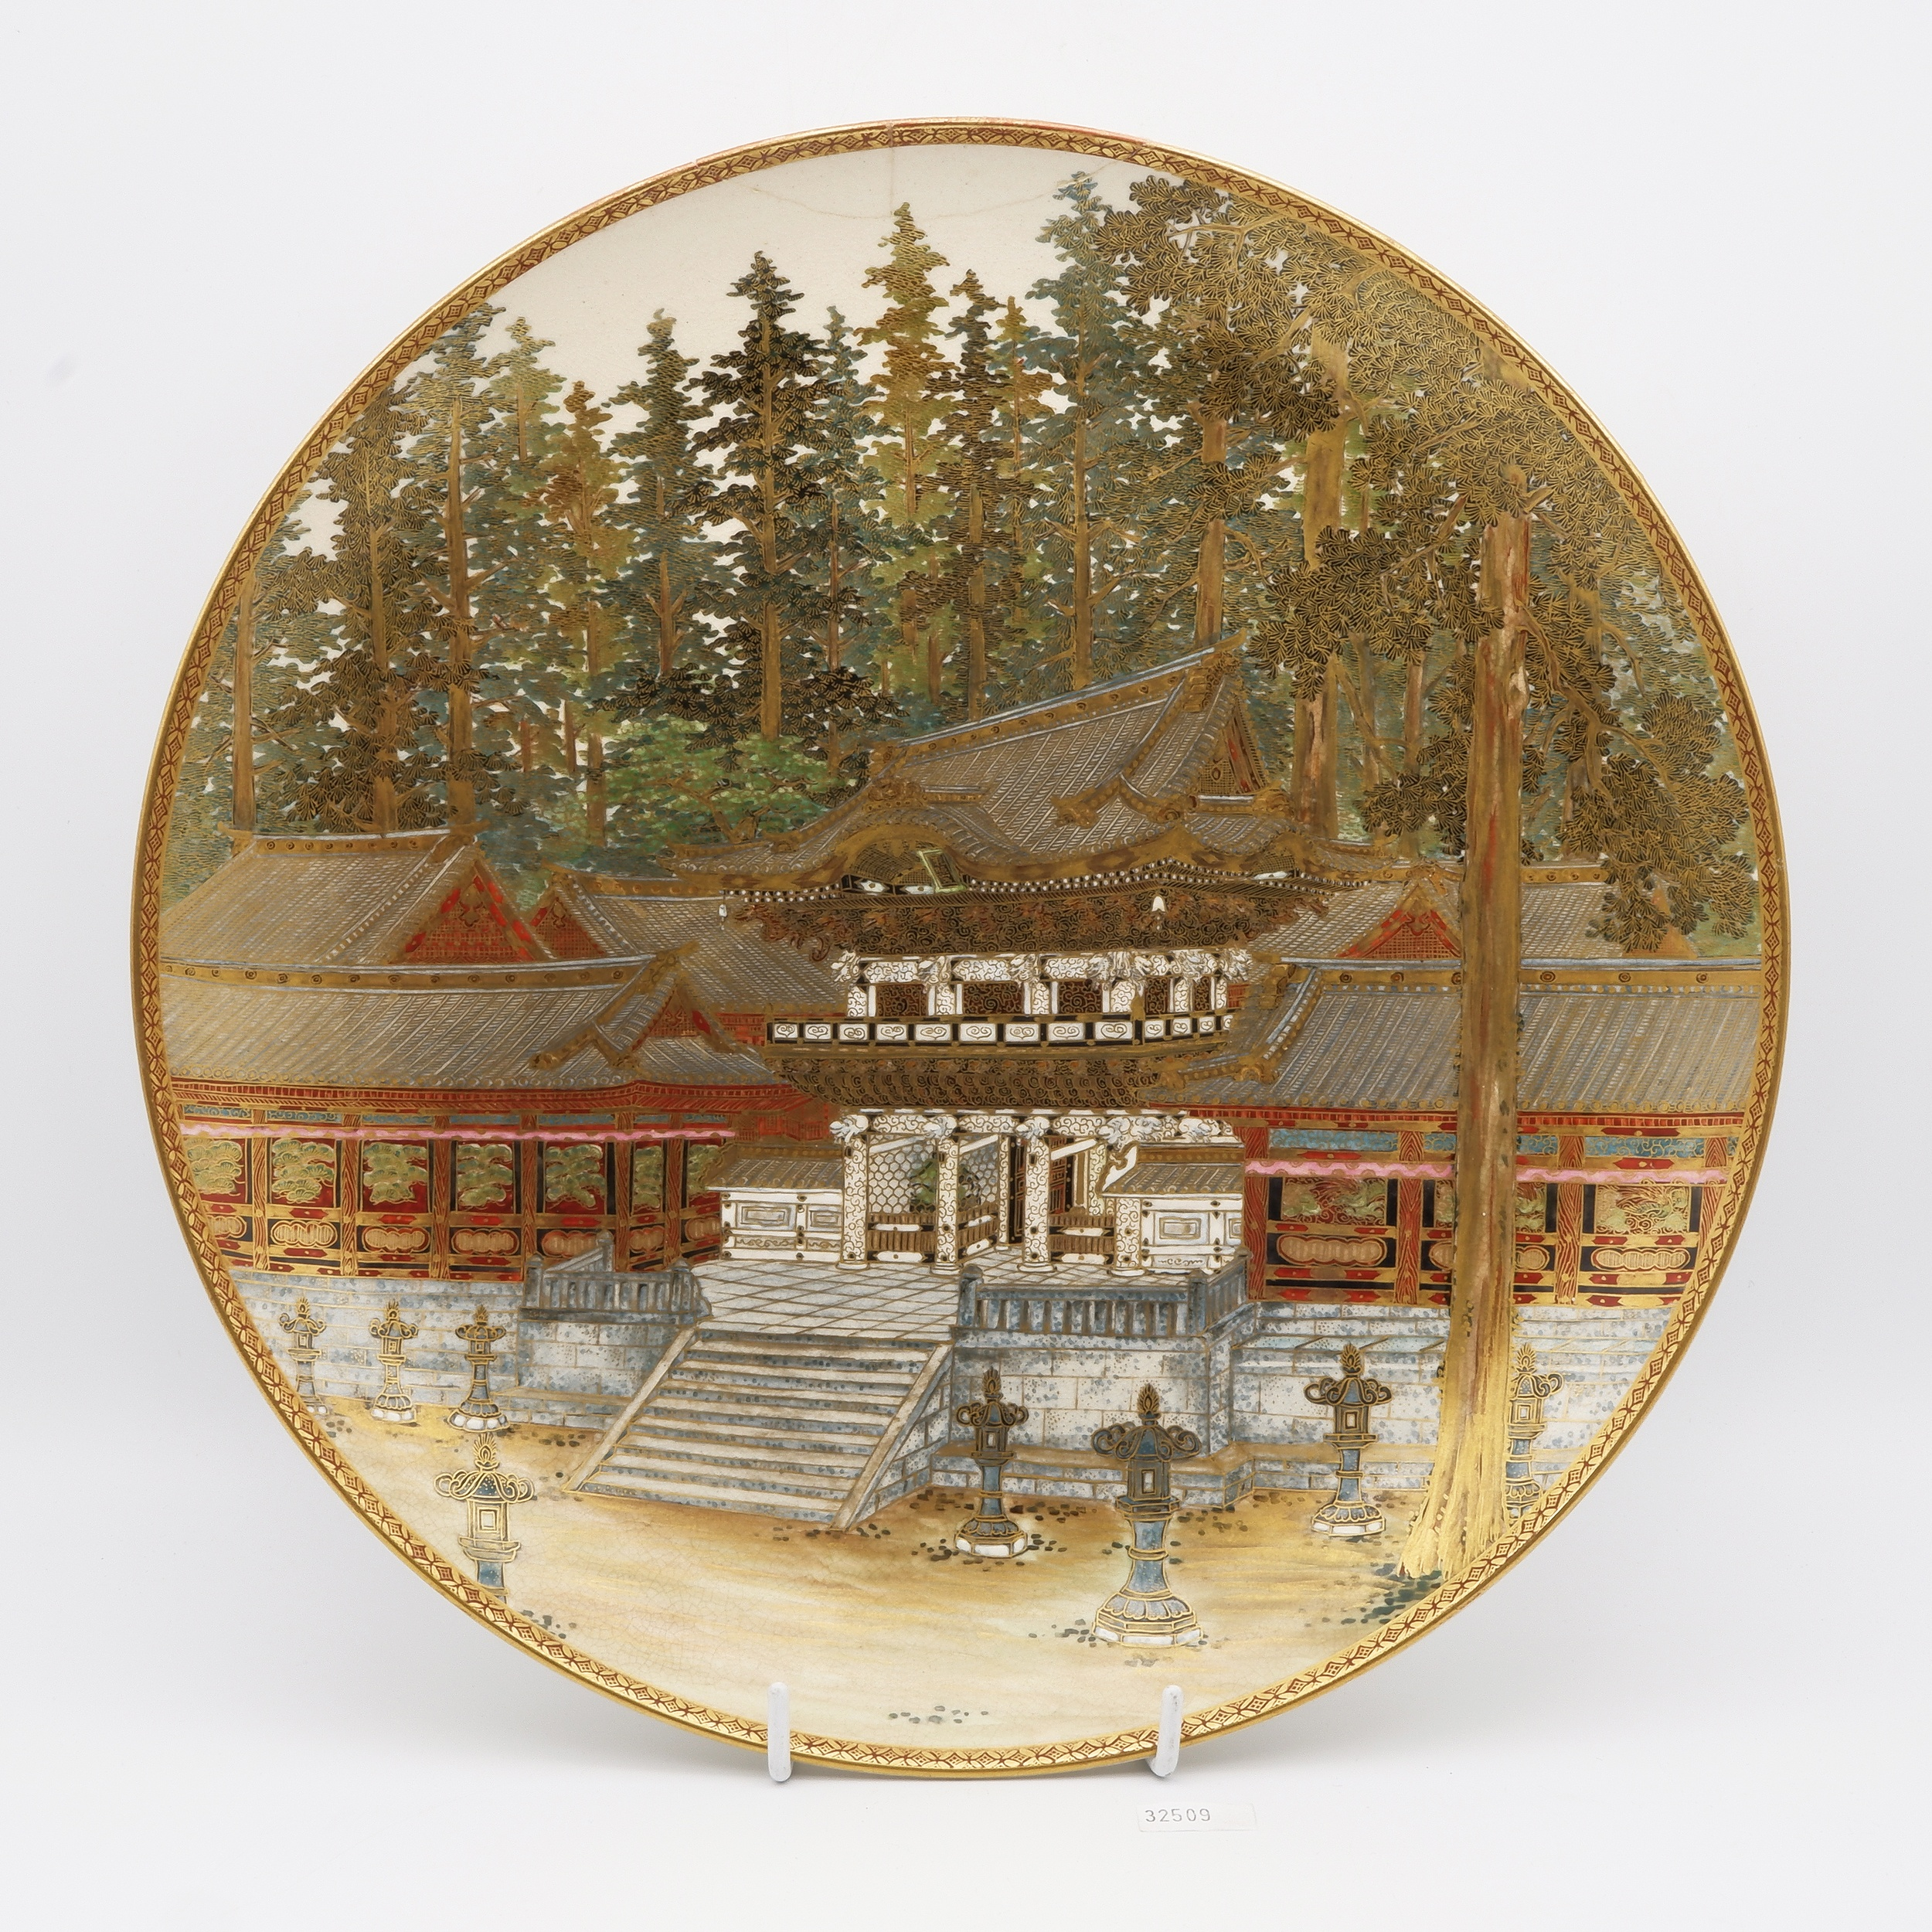 'Japanese Satsuma Charger Finely Painted with Pavilions in Pine Forrest, Meiji Period (1868-1912)'